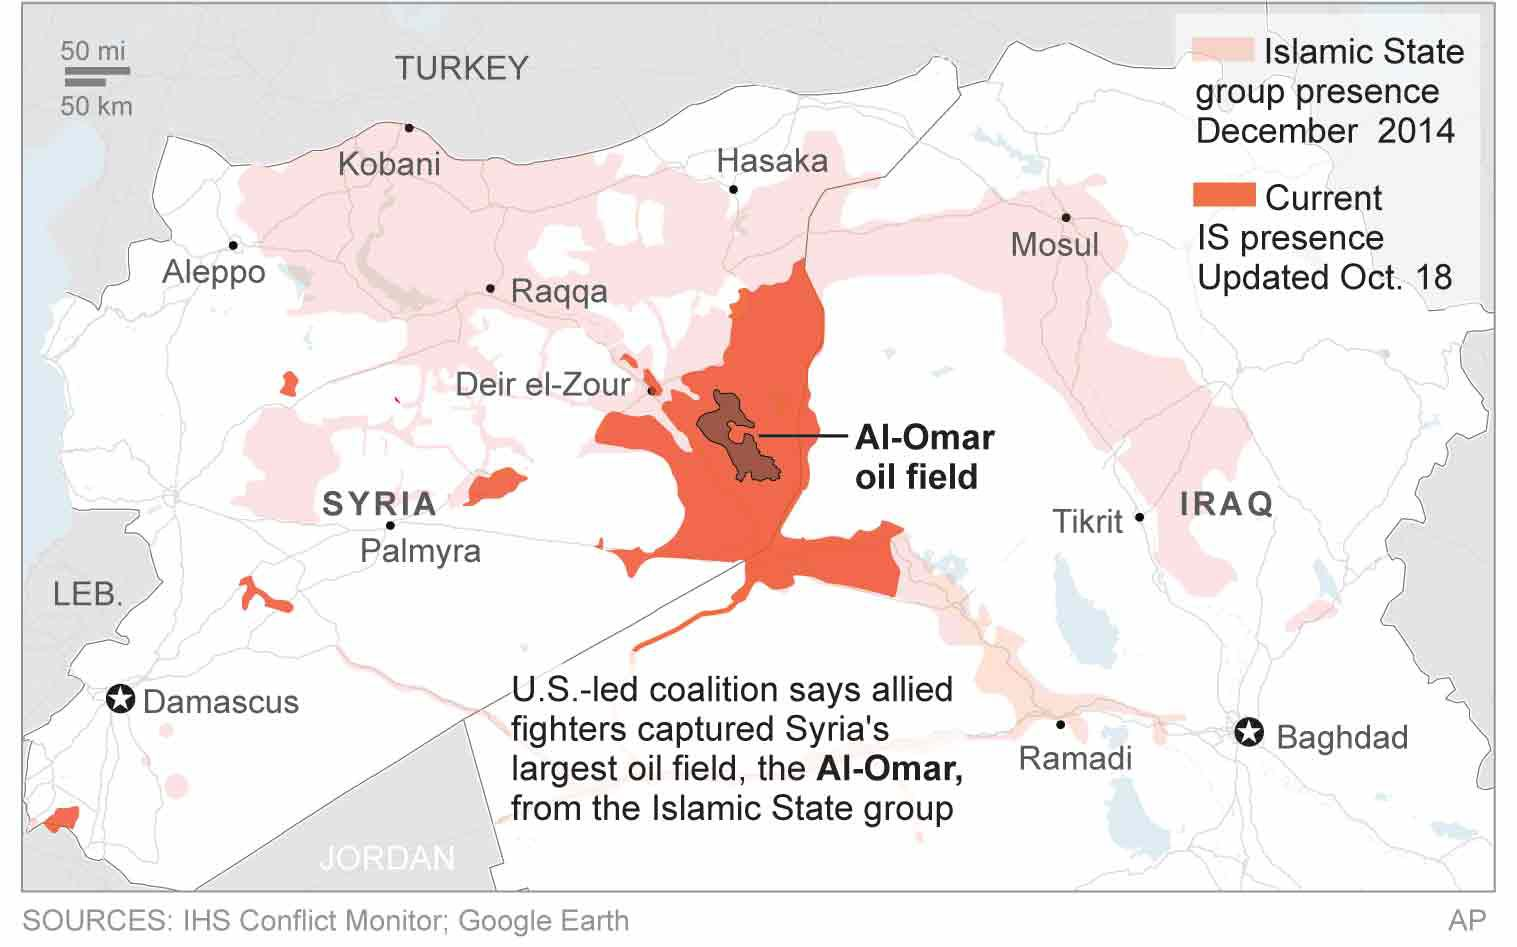 USbacked forces take Syrias largest oil field from IS Front